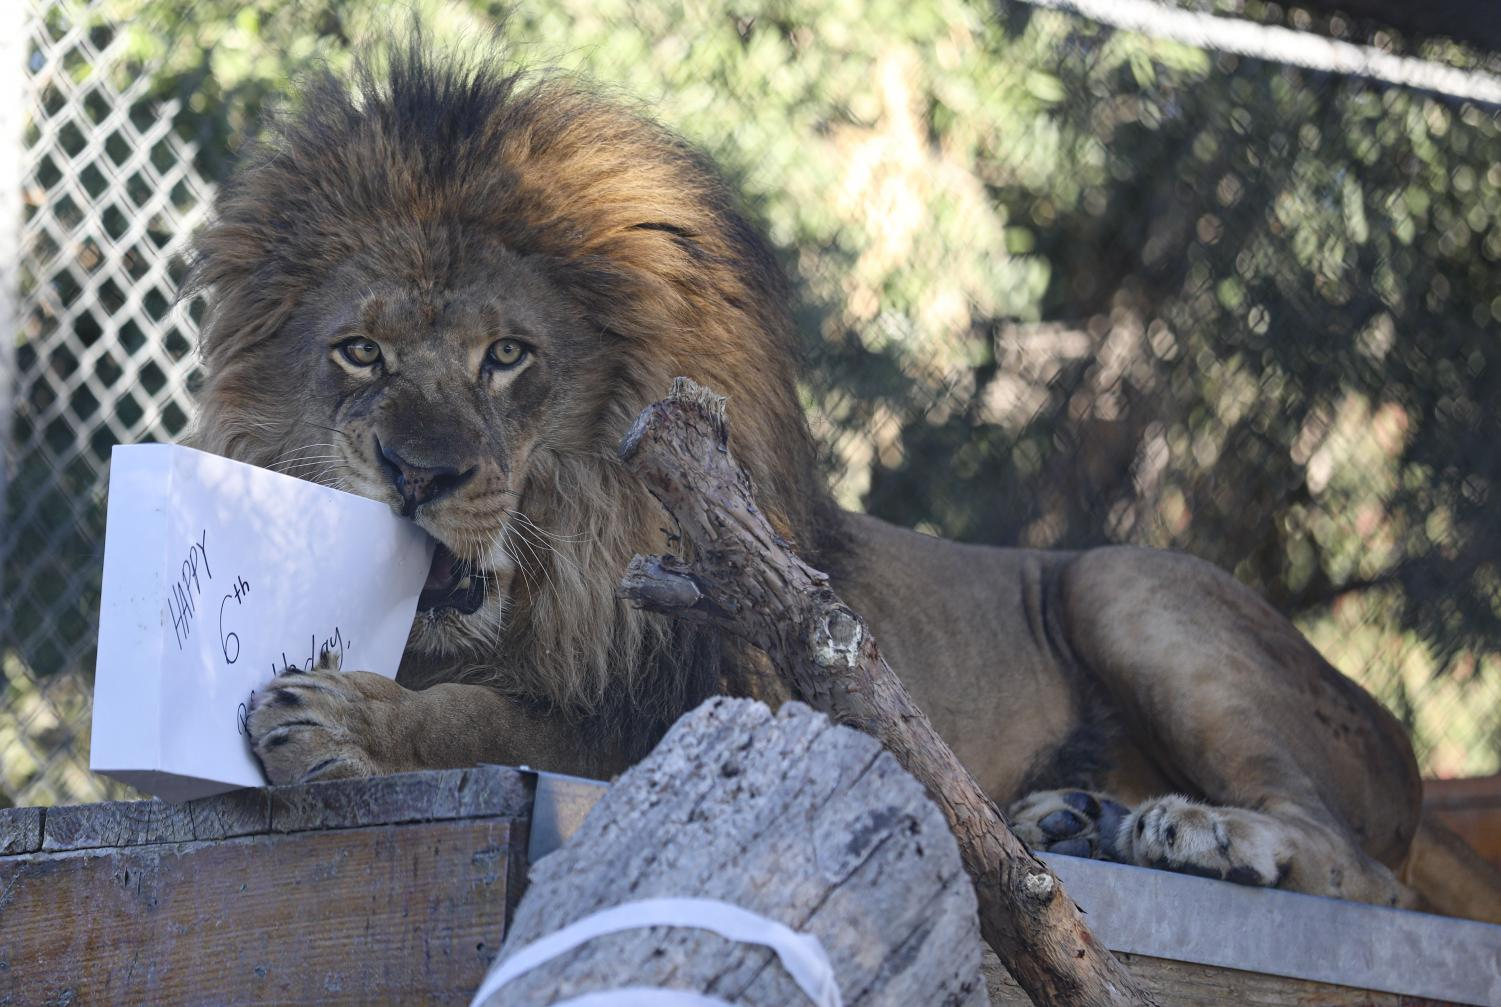 Ira the lion chews on a gift filled with meat he received during his birthday celebration at America's Teaching Zoo on Saturday, Feb. 1. Ira was celebrated for his sixth birthday. Photo credit: Ryan Bough